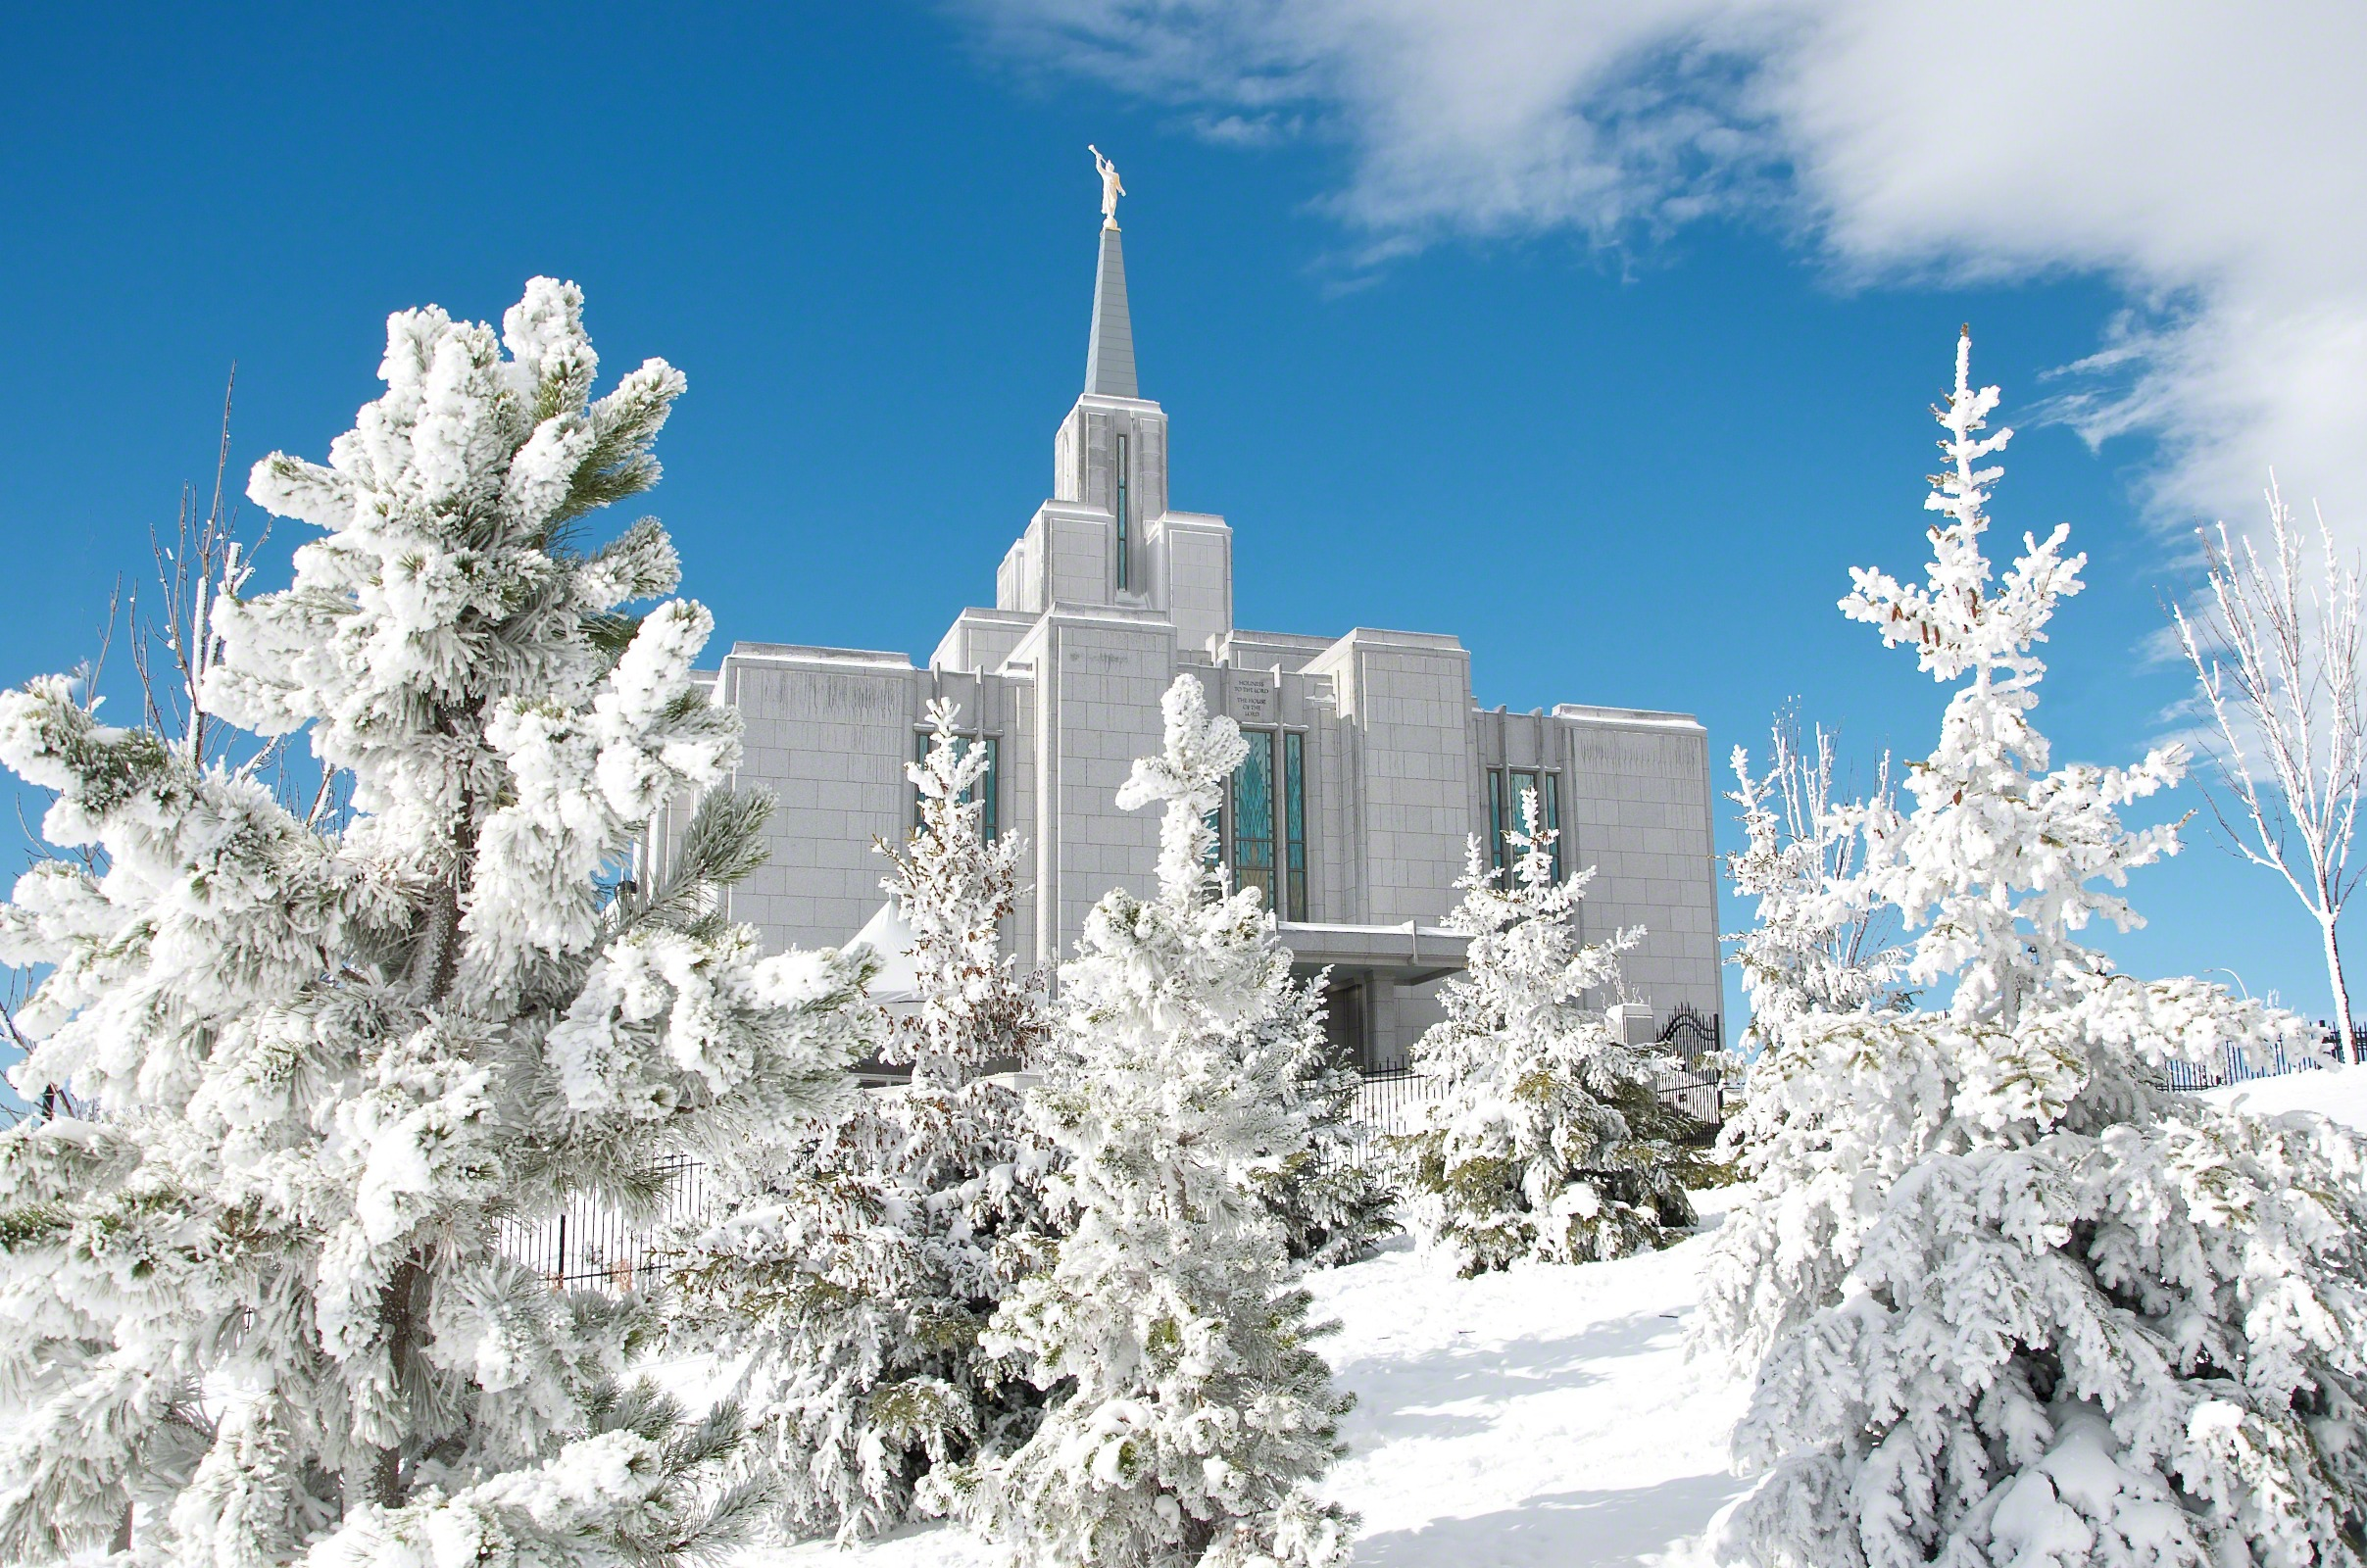 The calgary alberta temple in the winter - Lds temple wallpaper ...